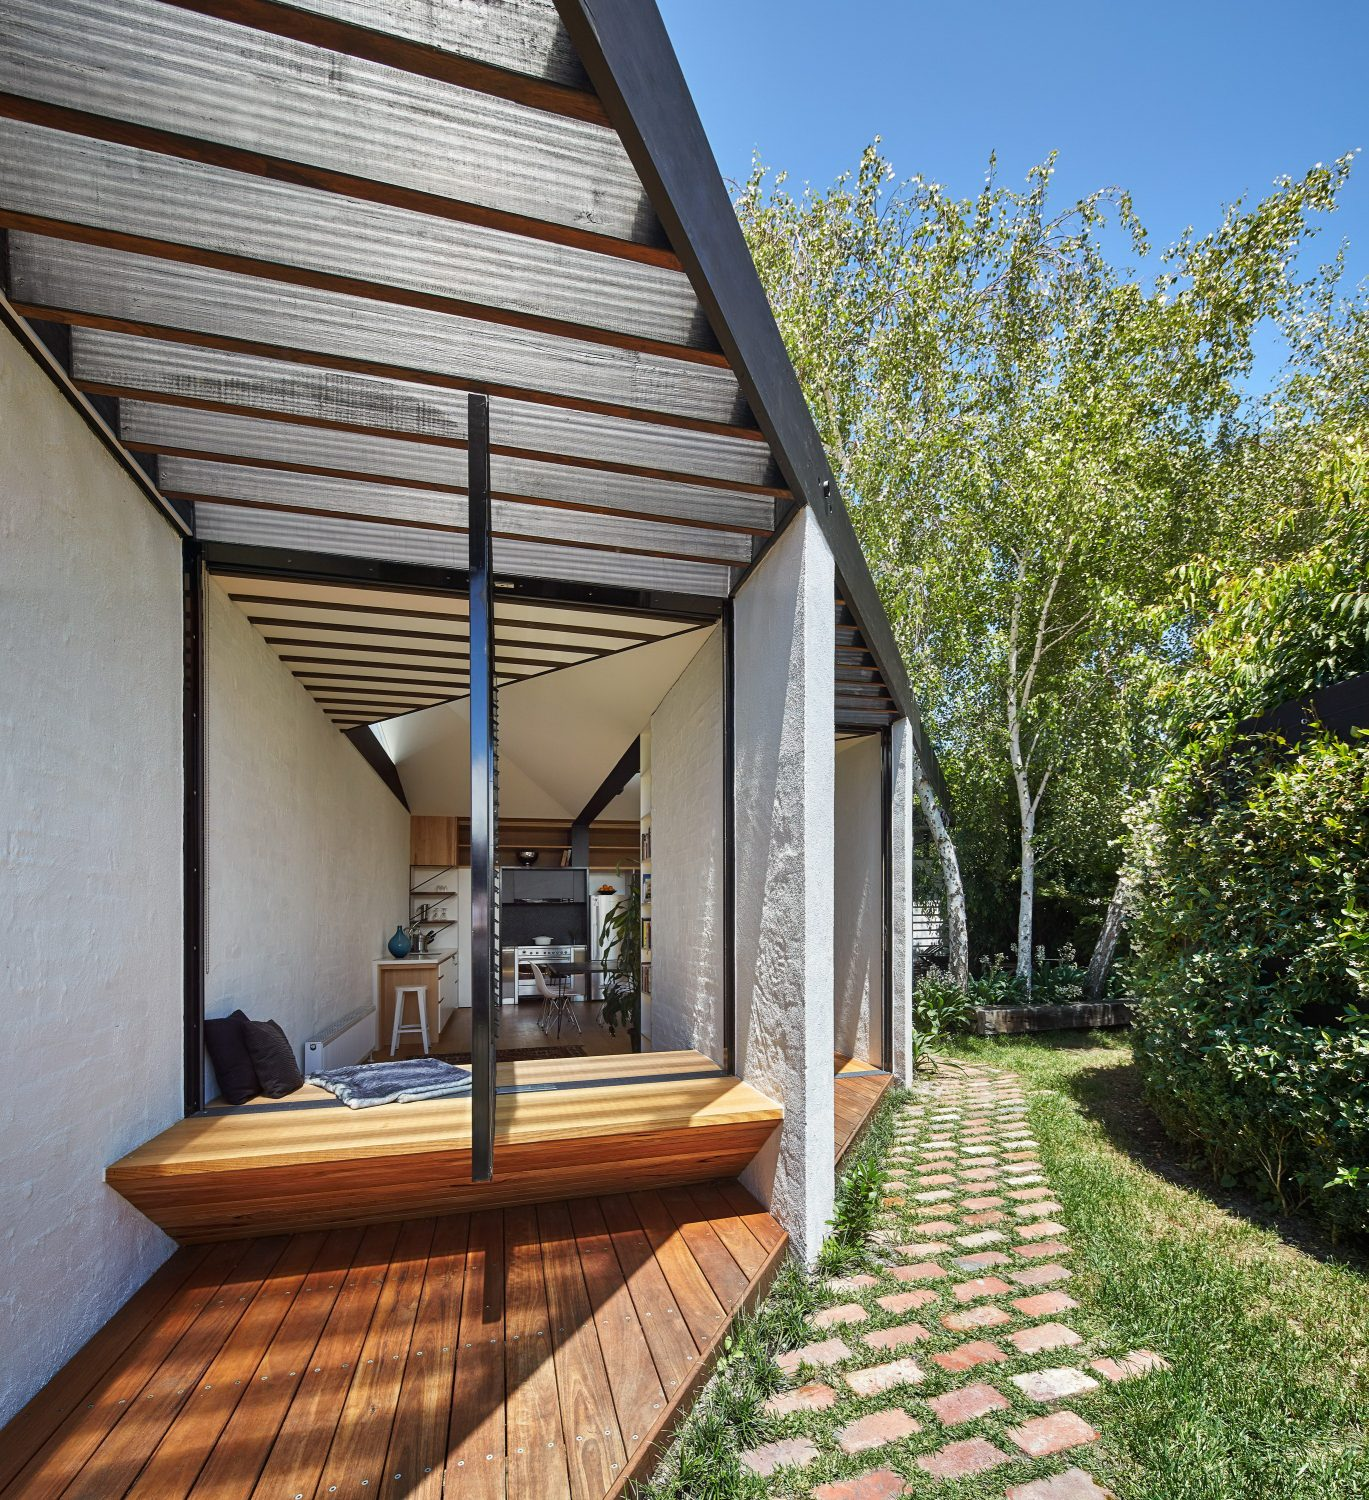 The Kite by Architecture Architecture